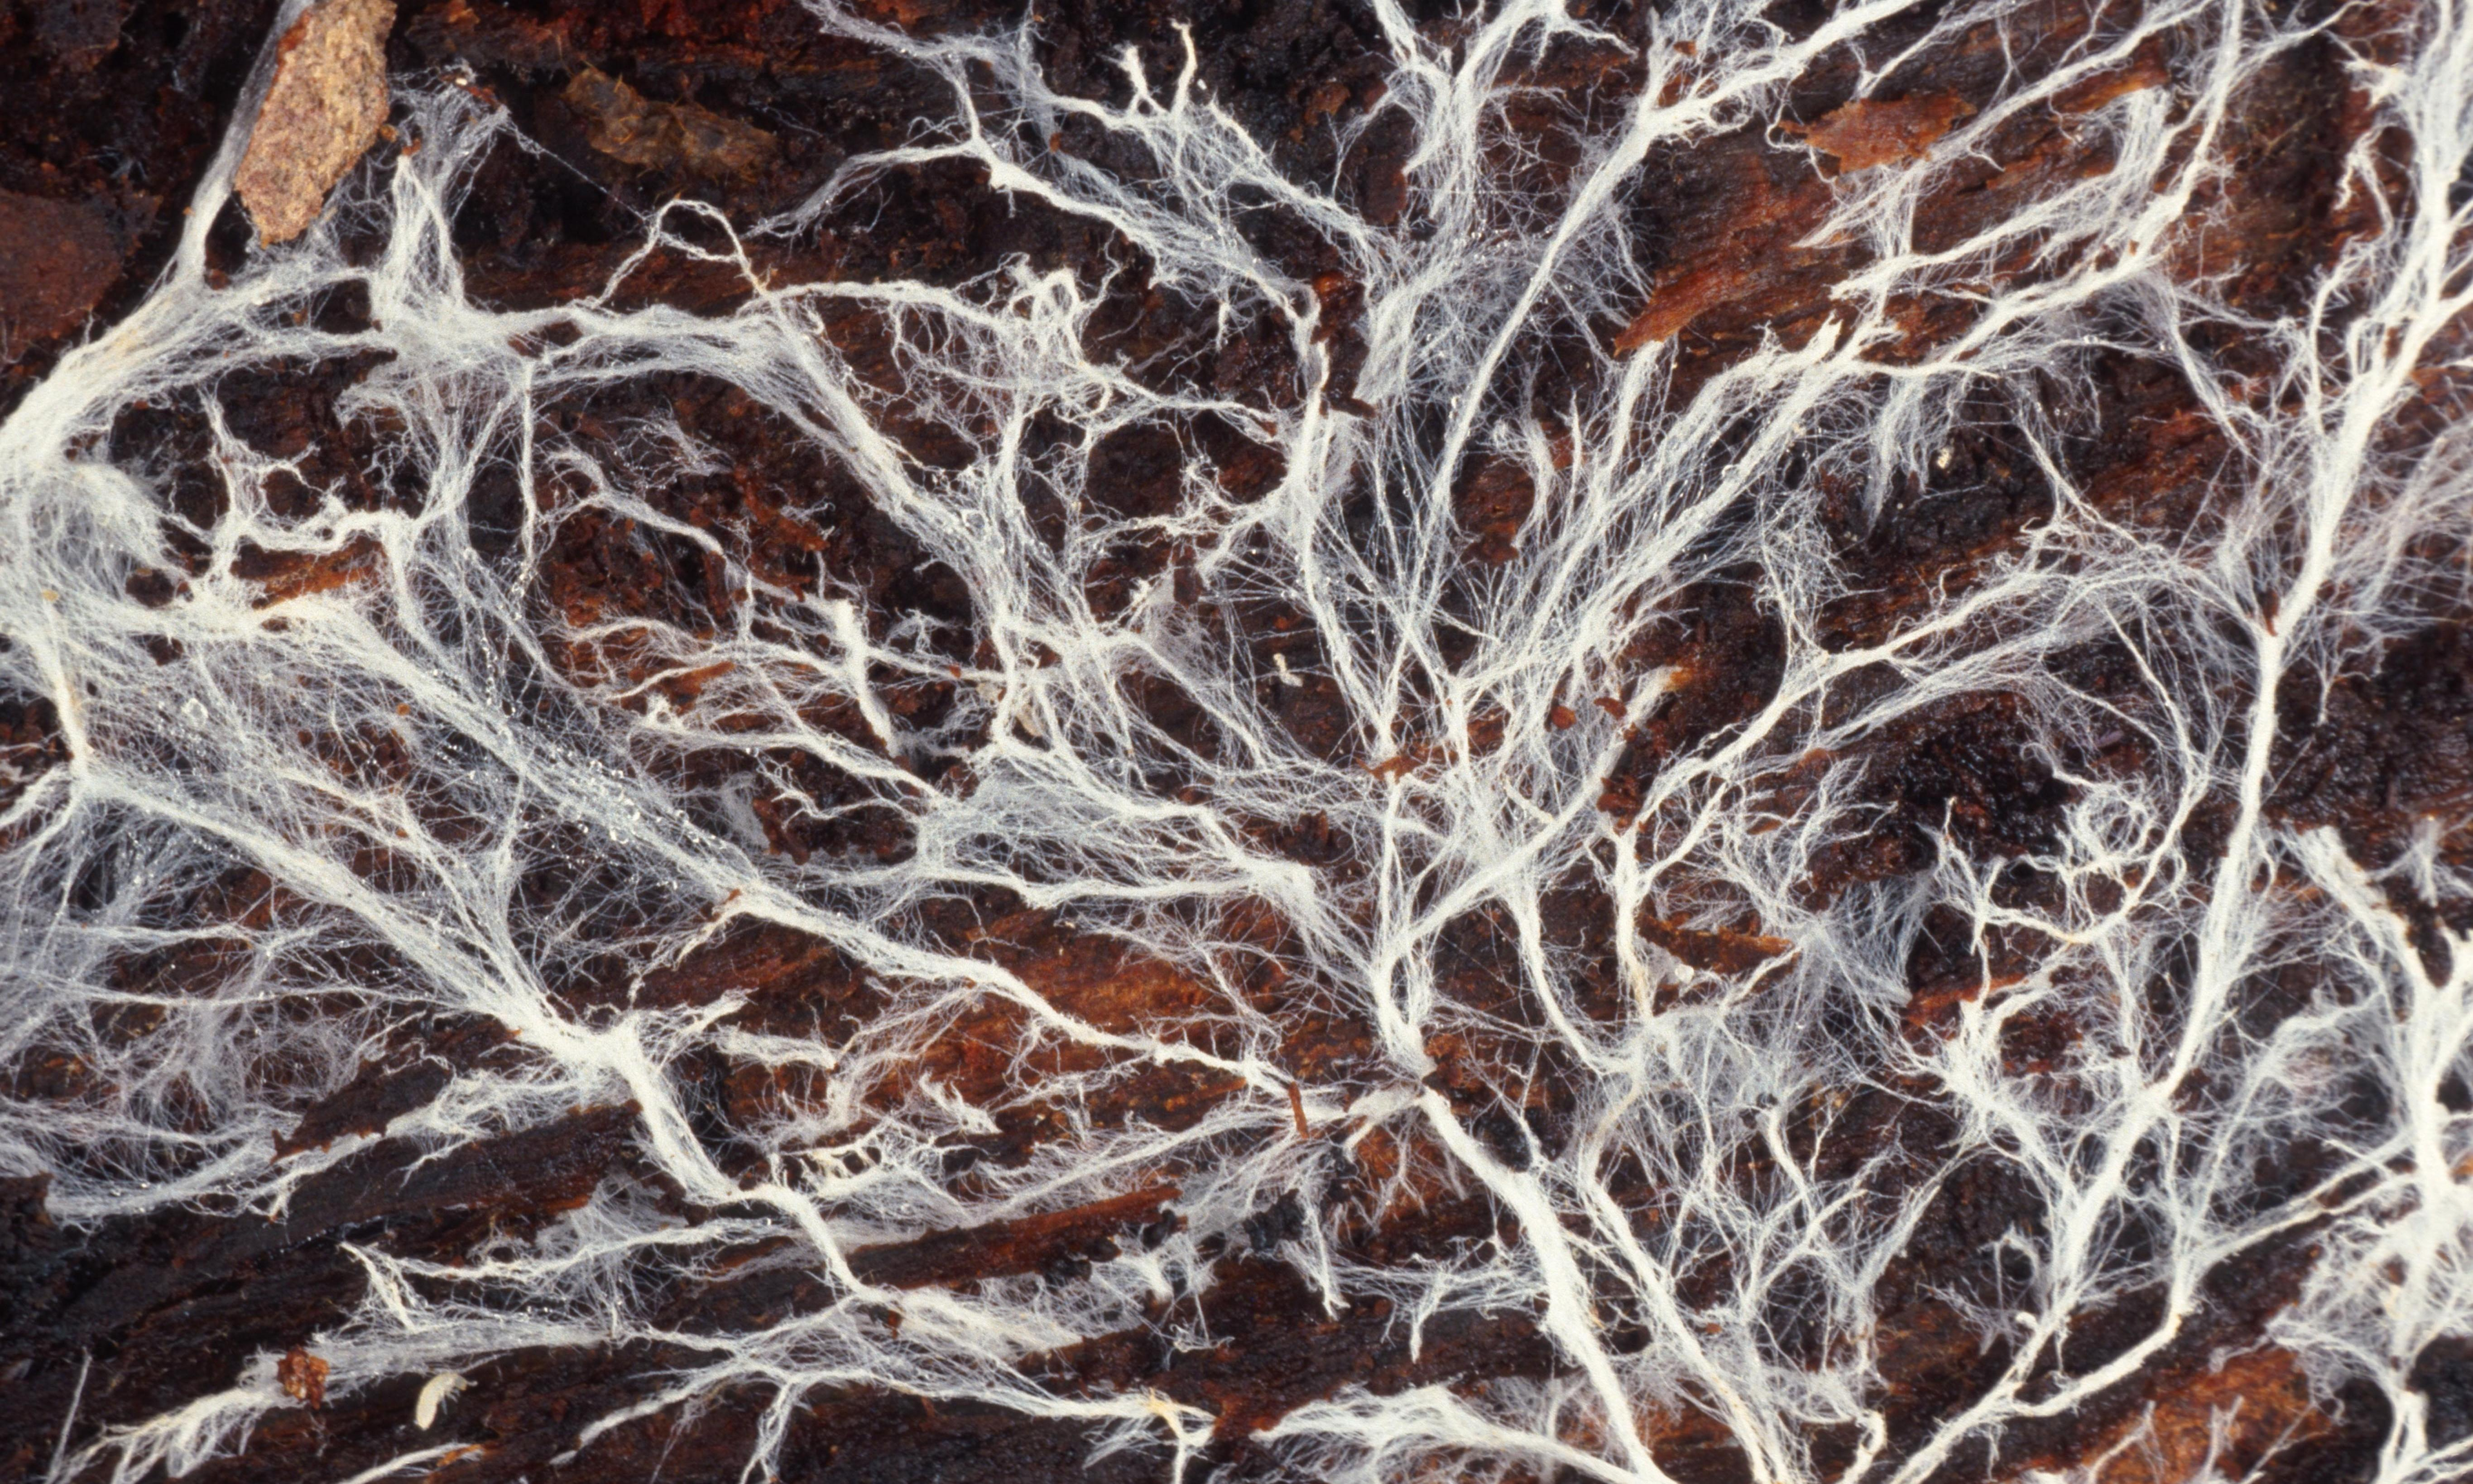 Strangest things: fossils reveal how fungus shaped life on Earth